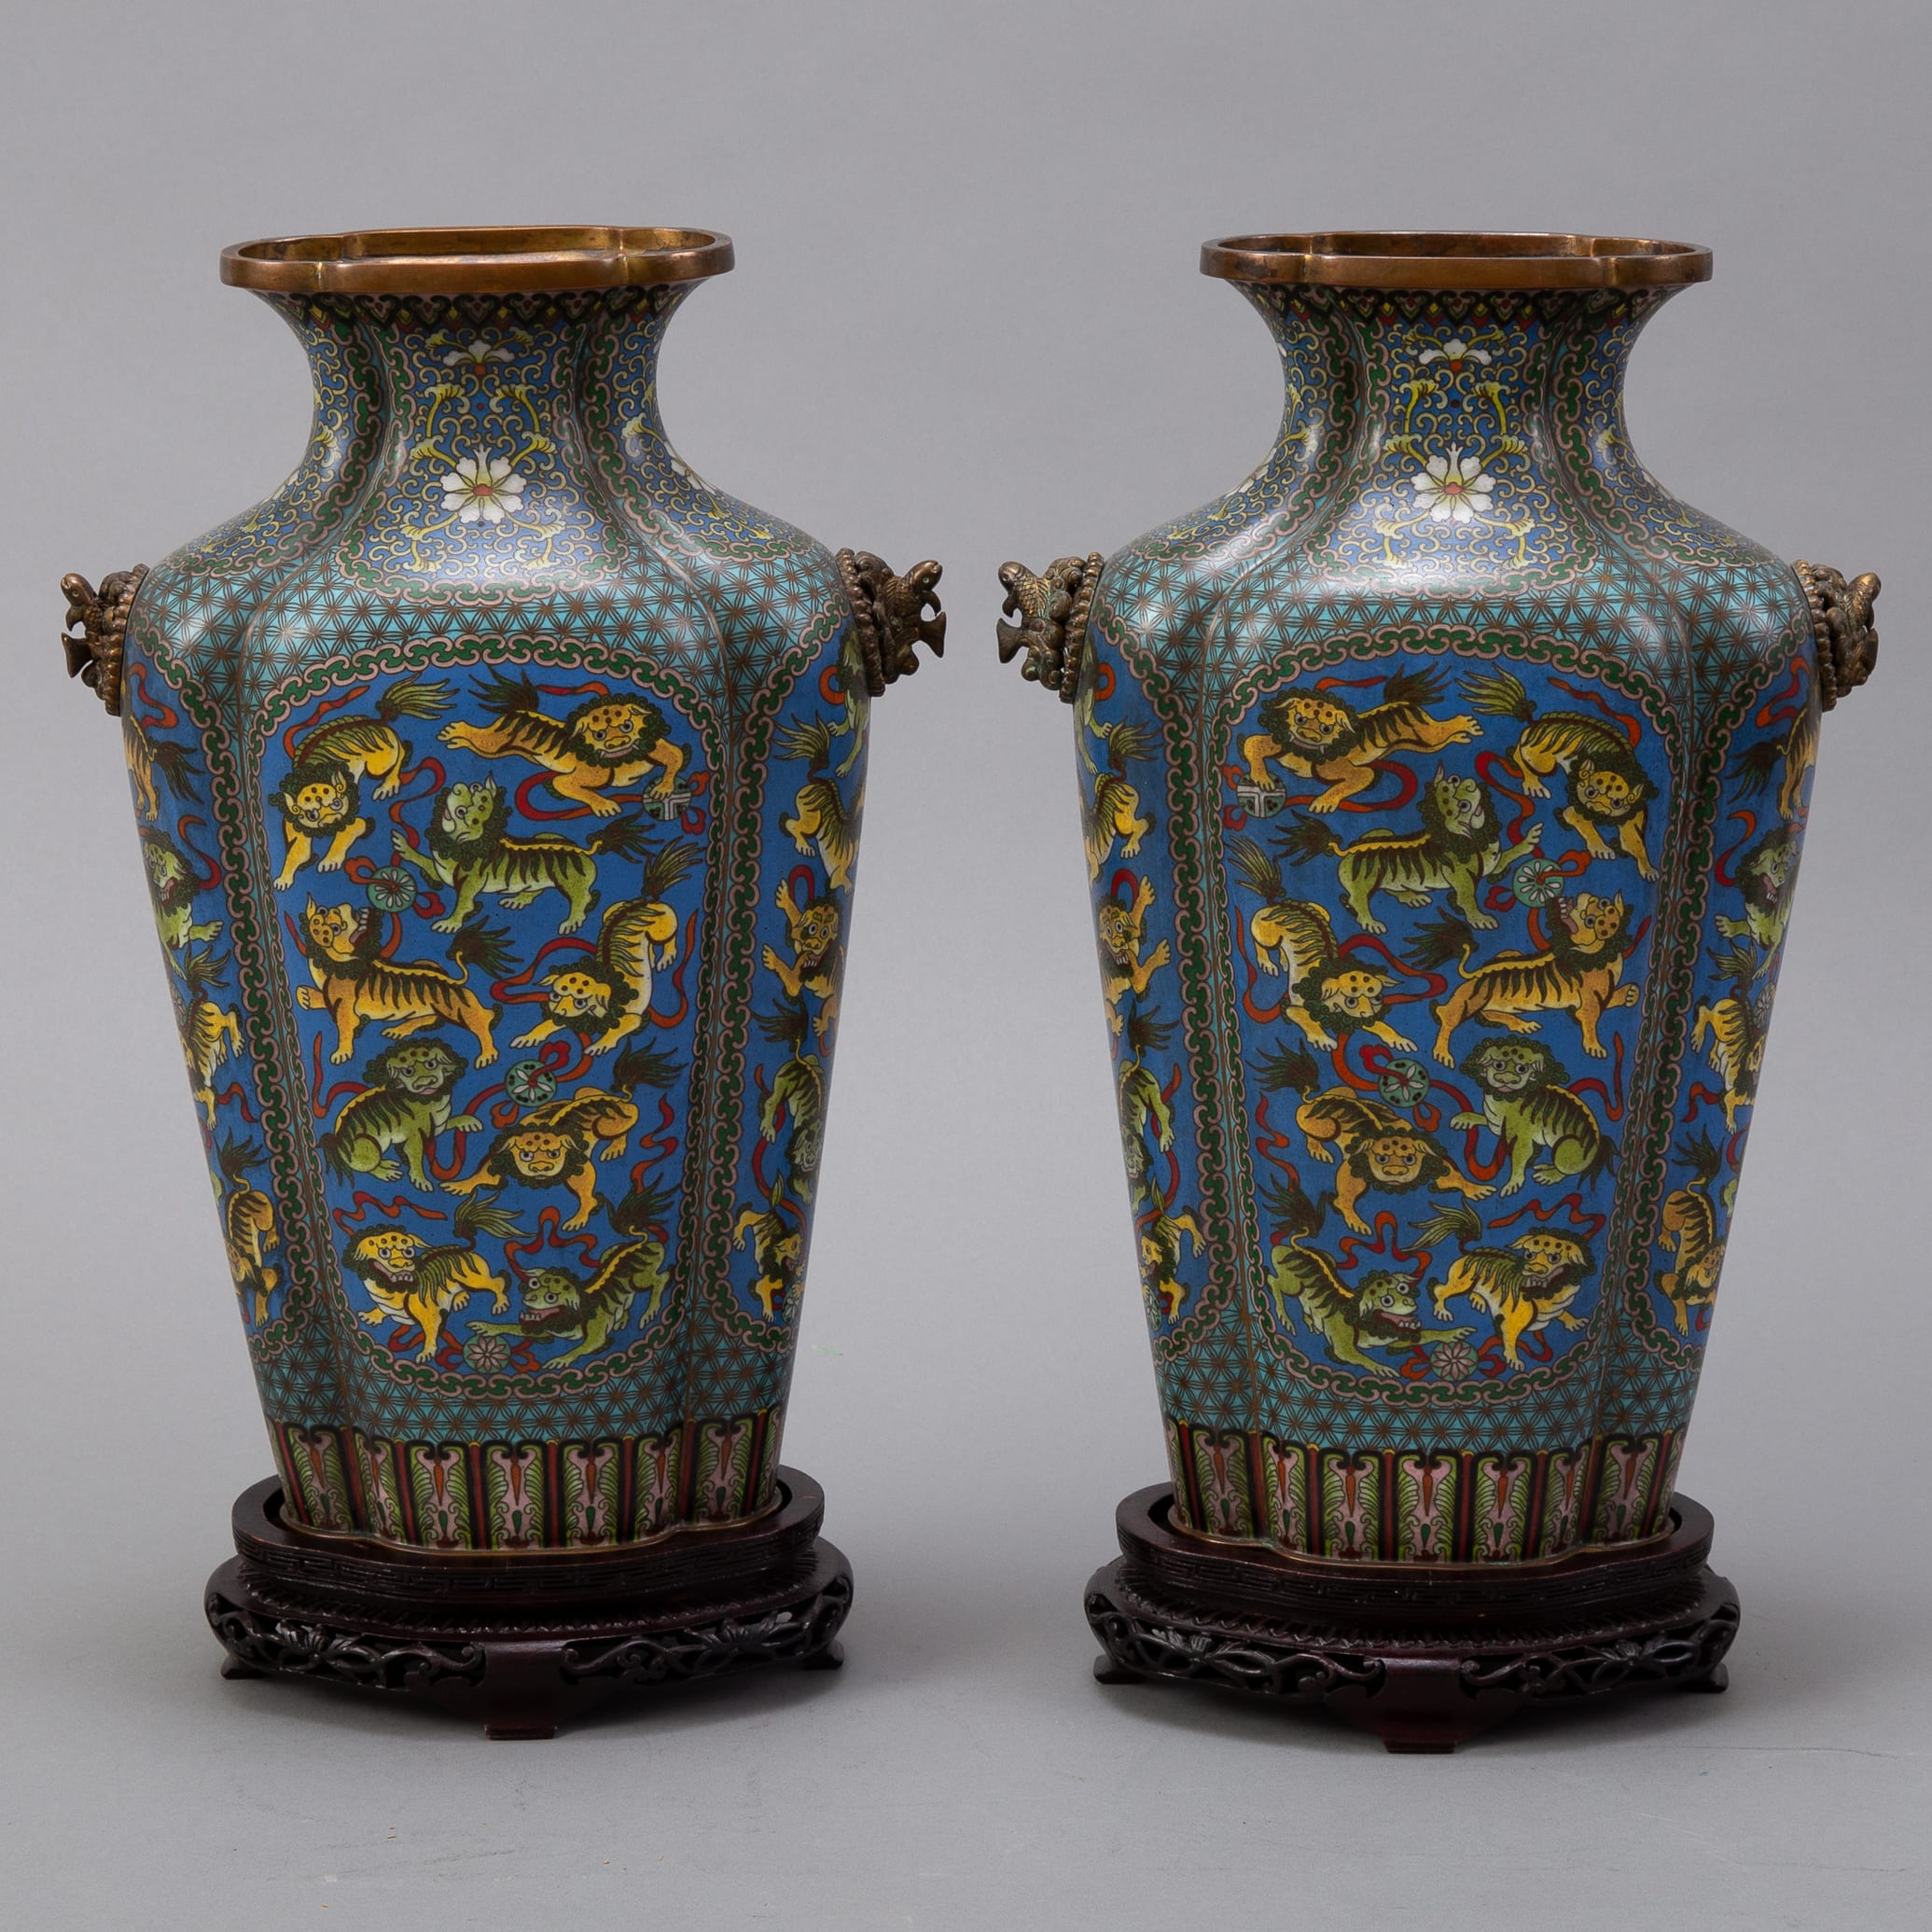 Lot 017: Pr 20th c. Japanese Cloisonne Vases with Foo Dogs